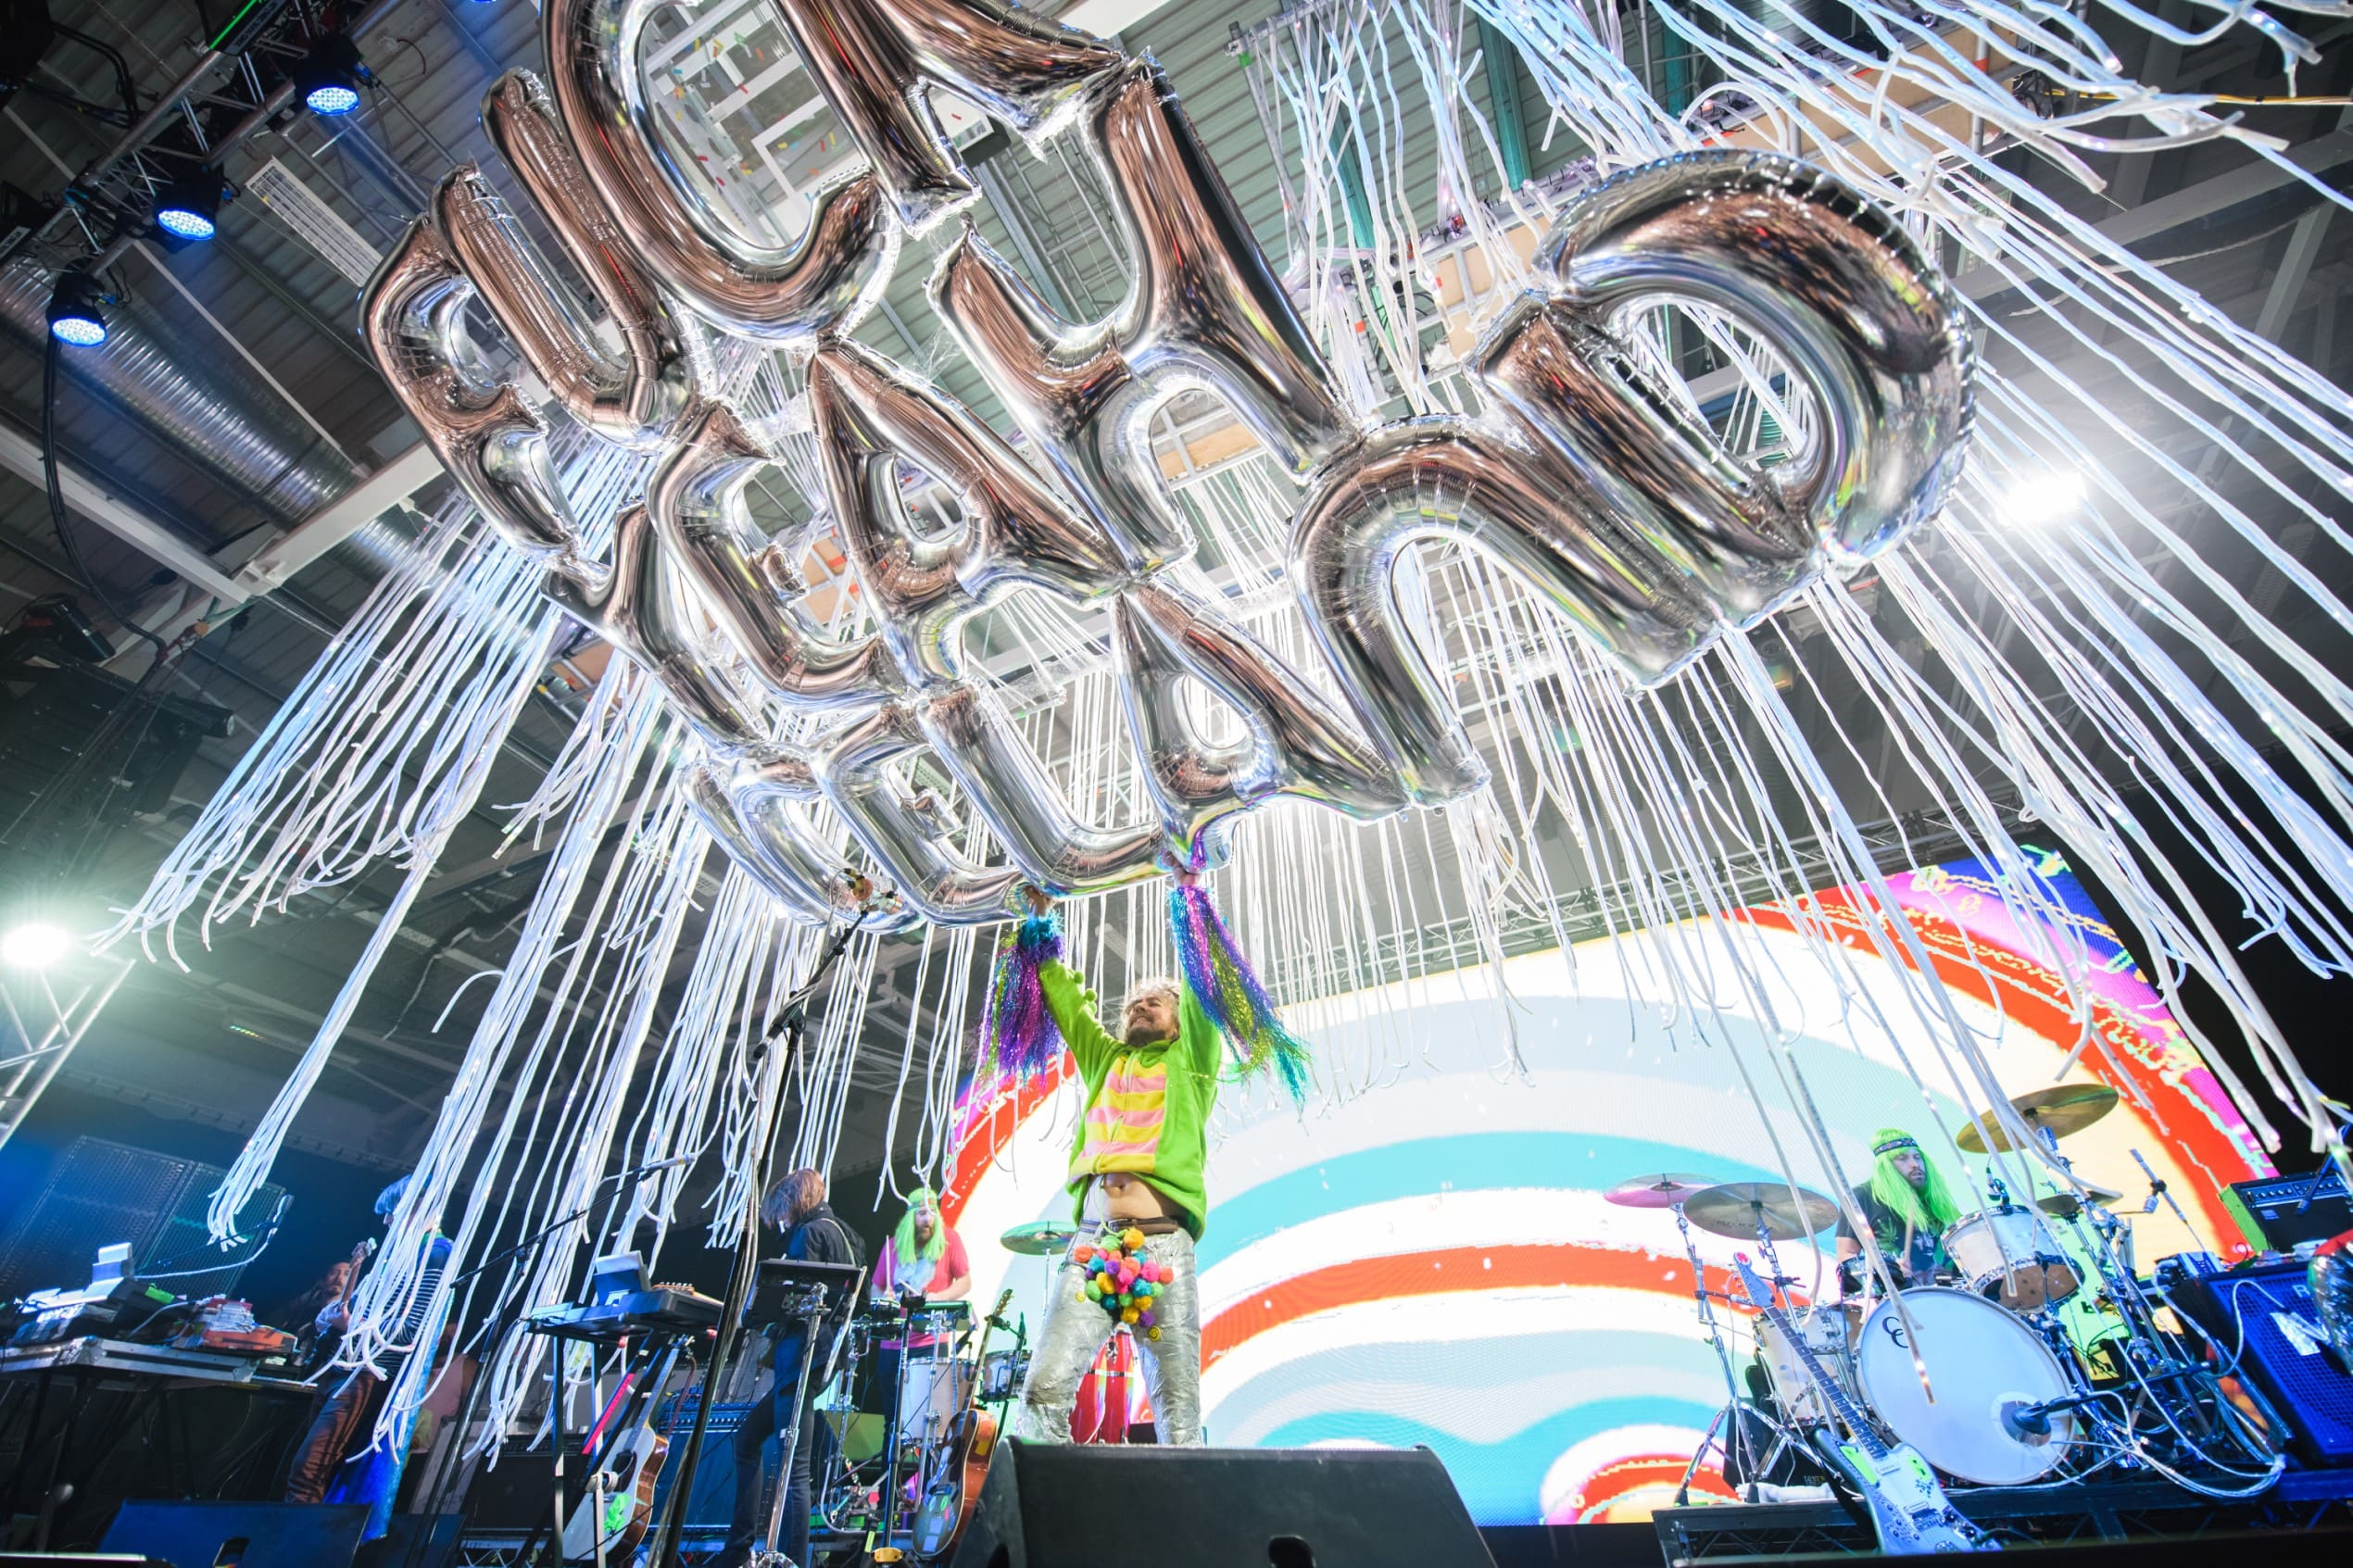 The Flaming Lips performer releases a large silver balloon that reads 'F*ck Yeah Iceland' into the crowd